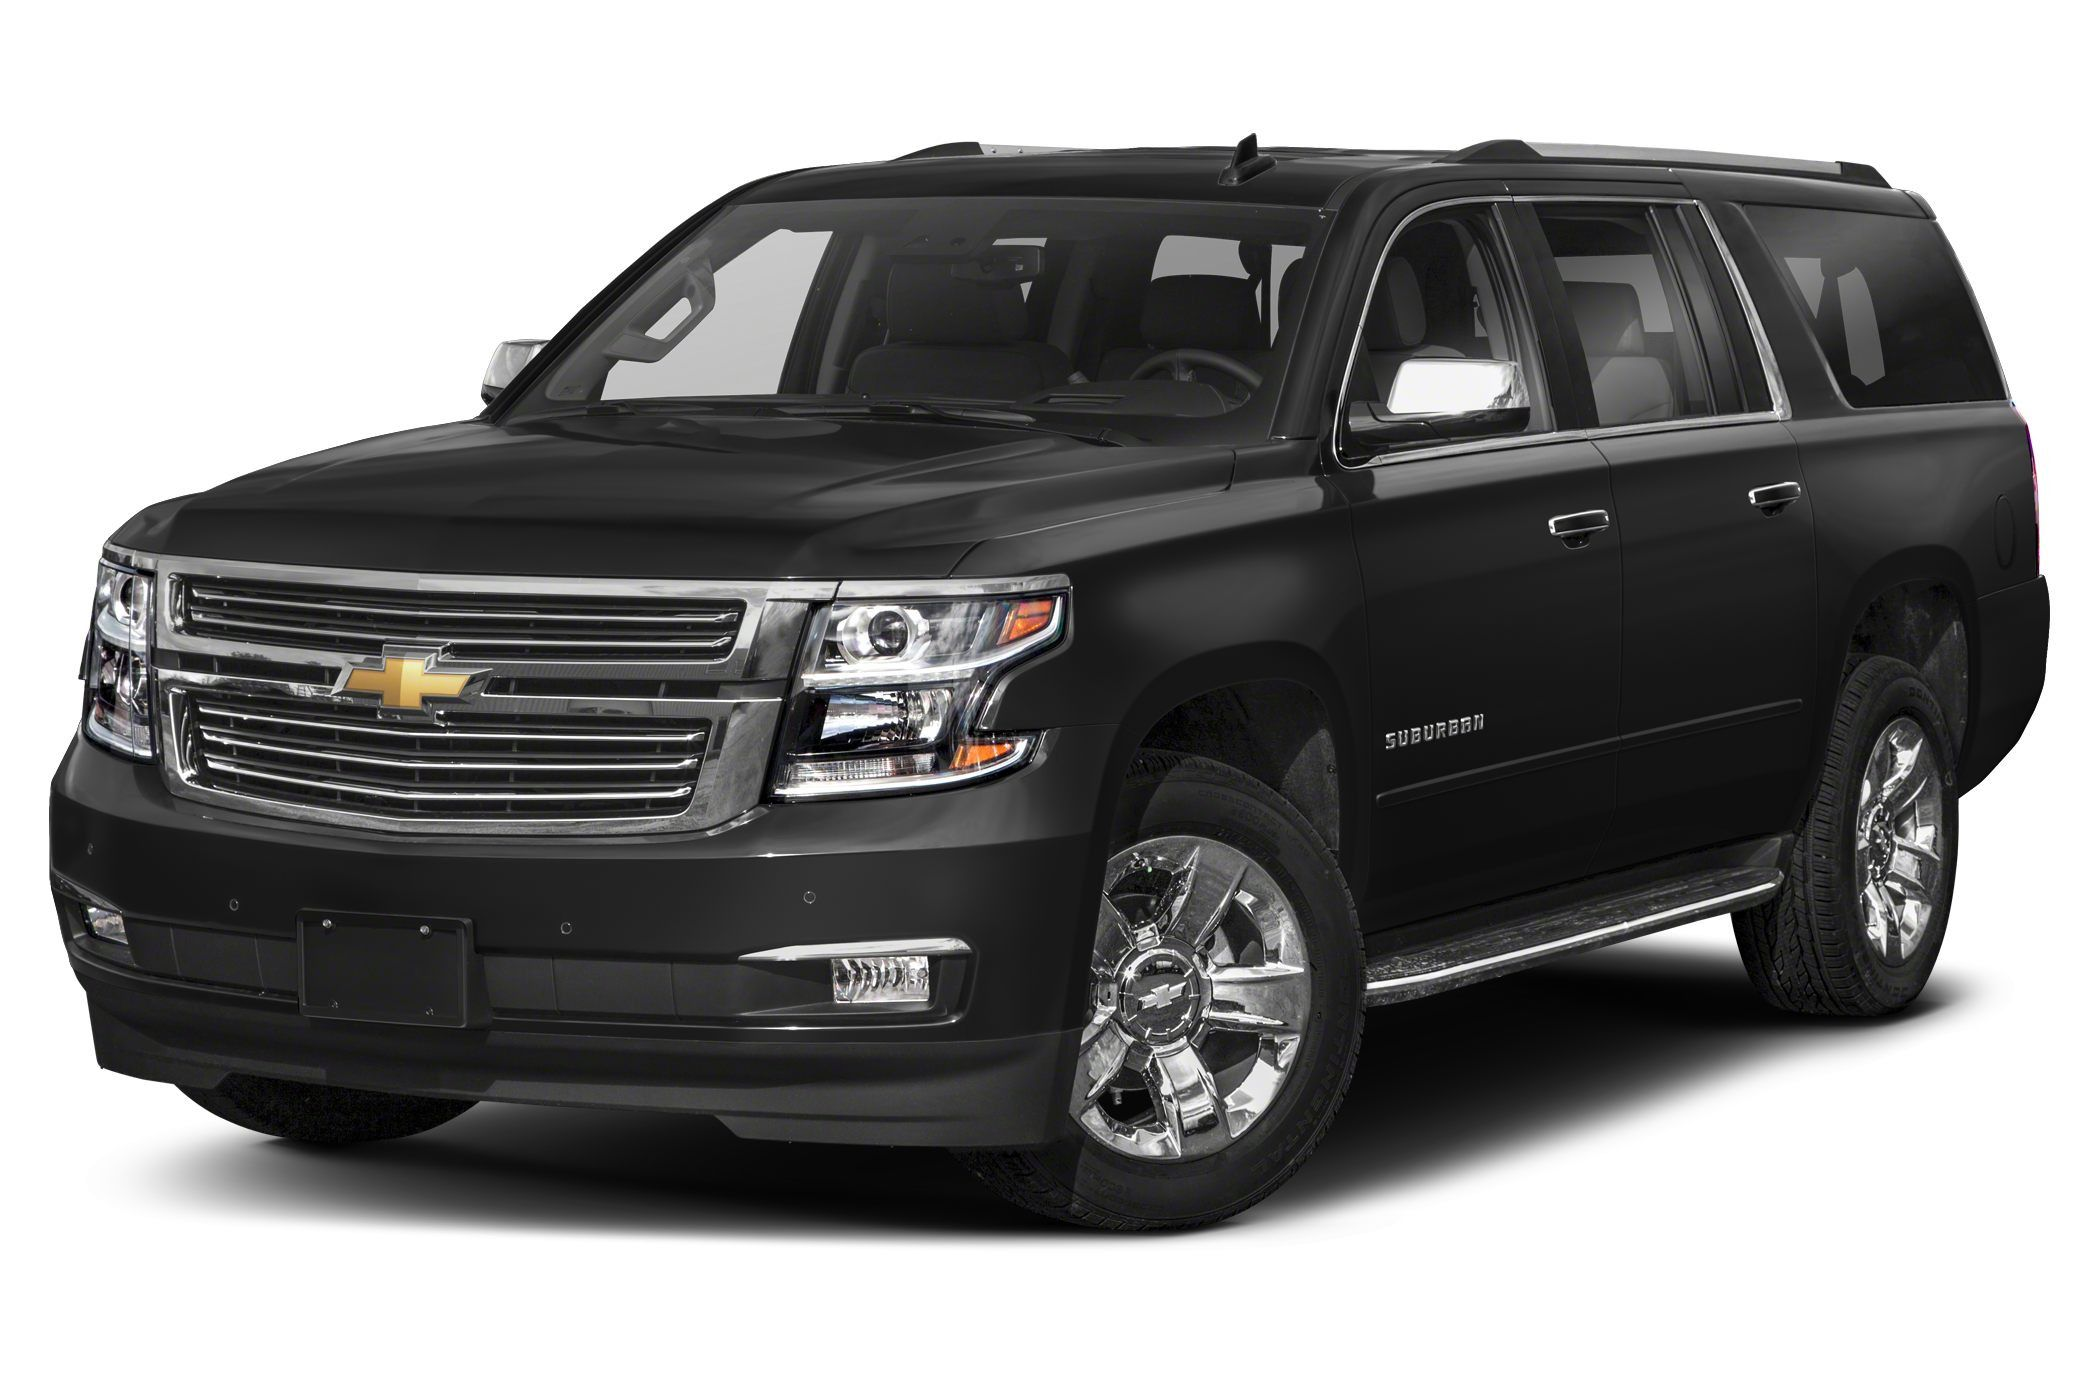 2019 Chevrolet Suburban Check More At Http Www New Cars Club